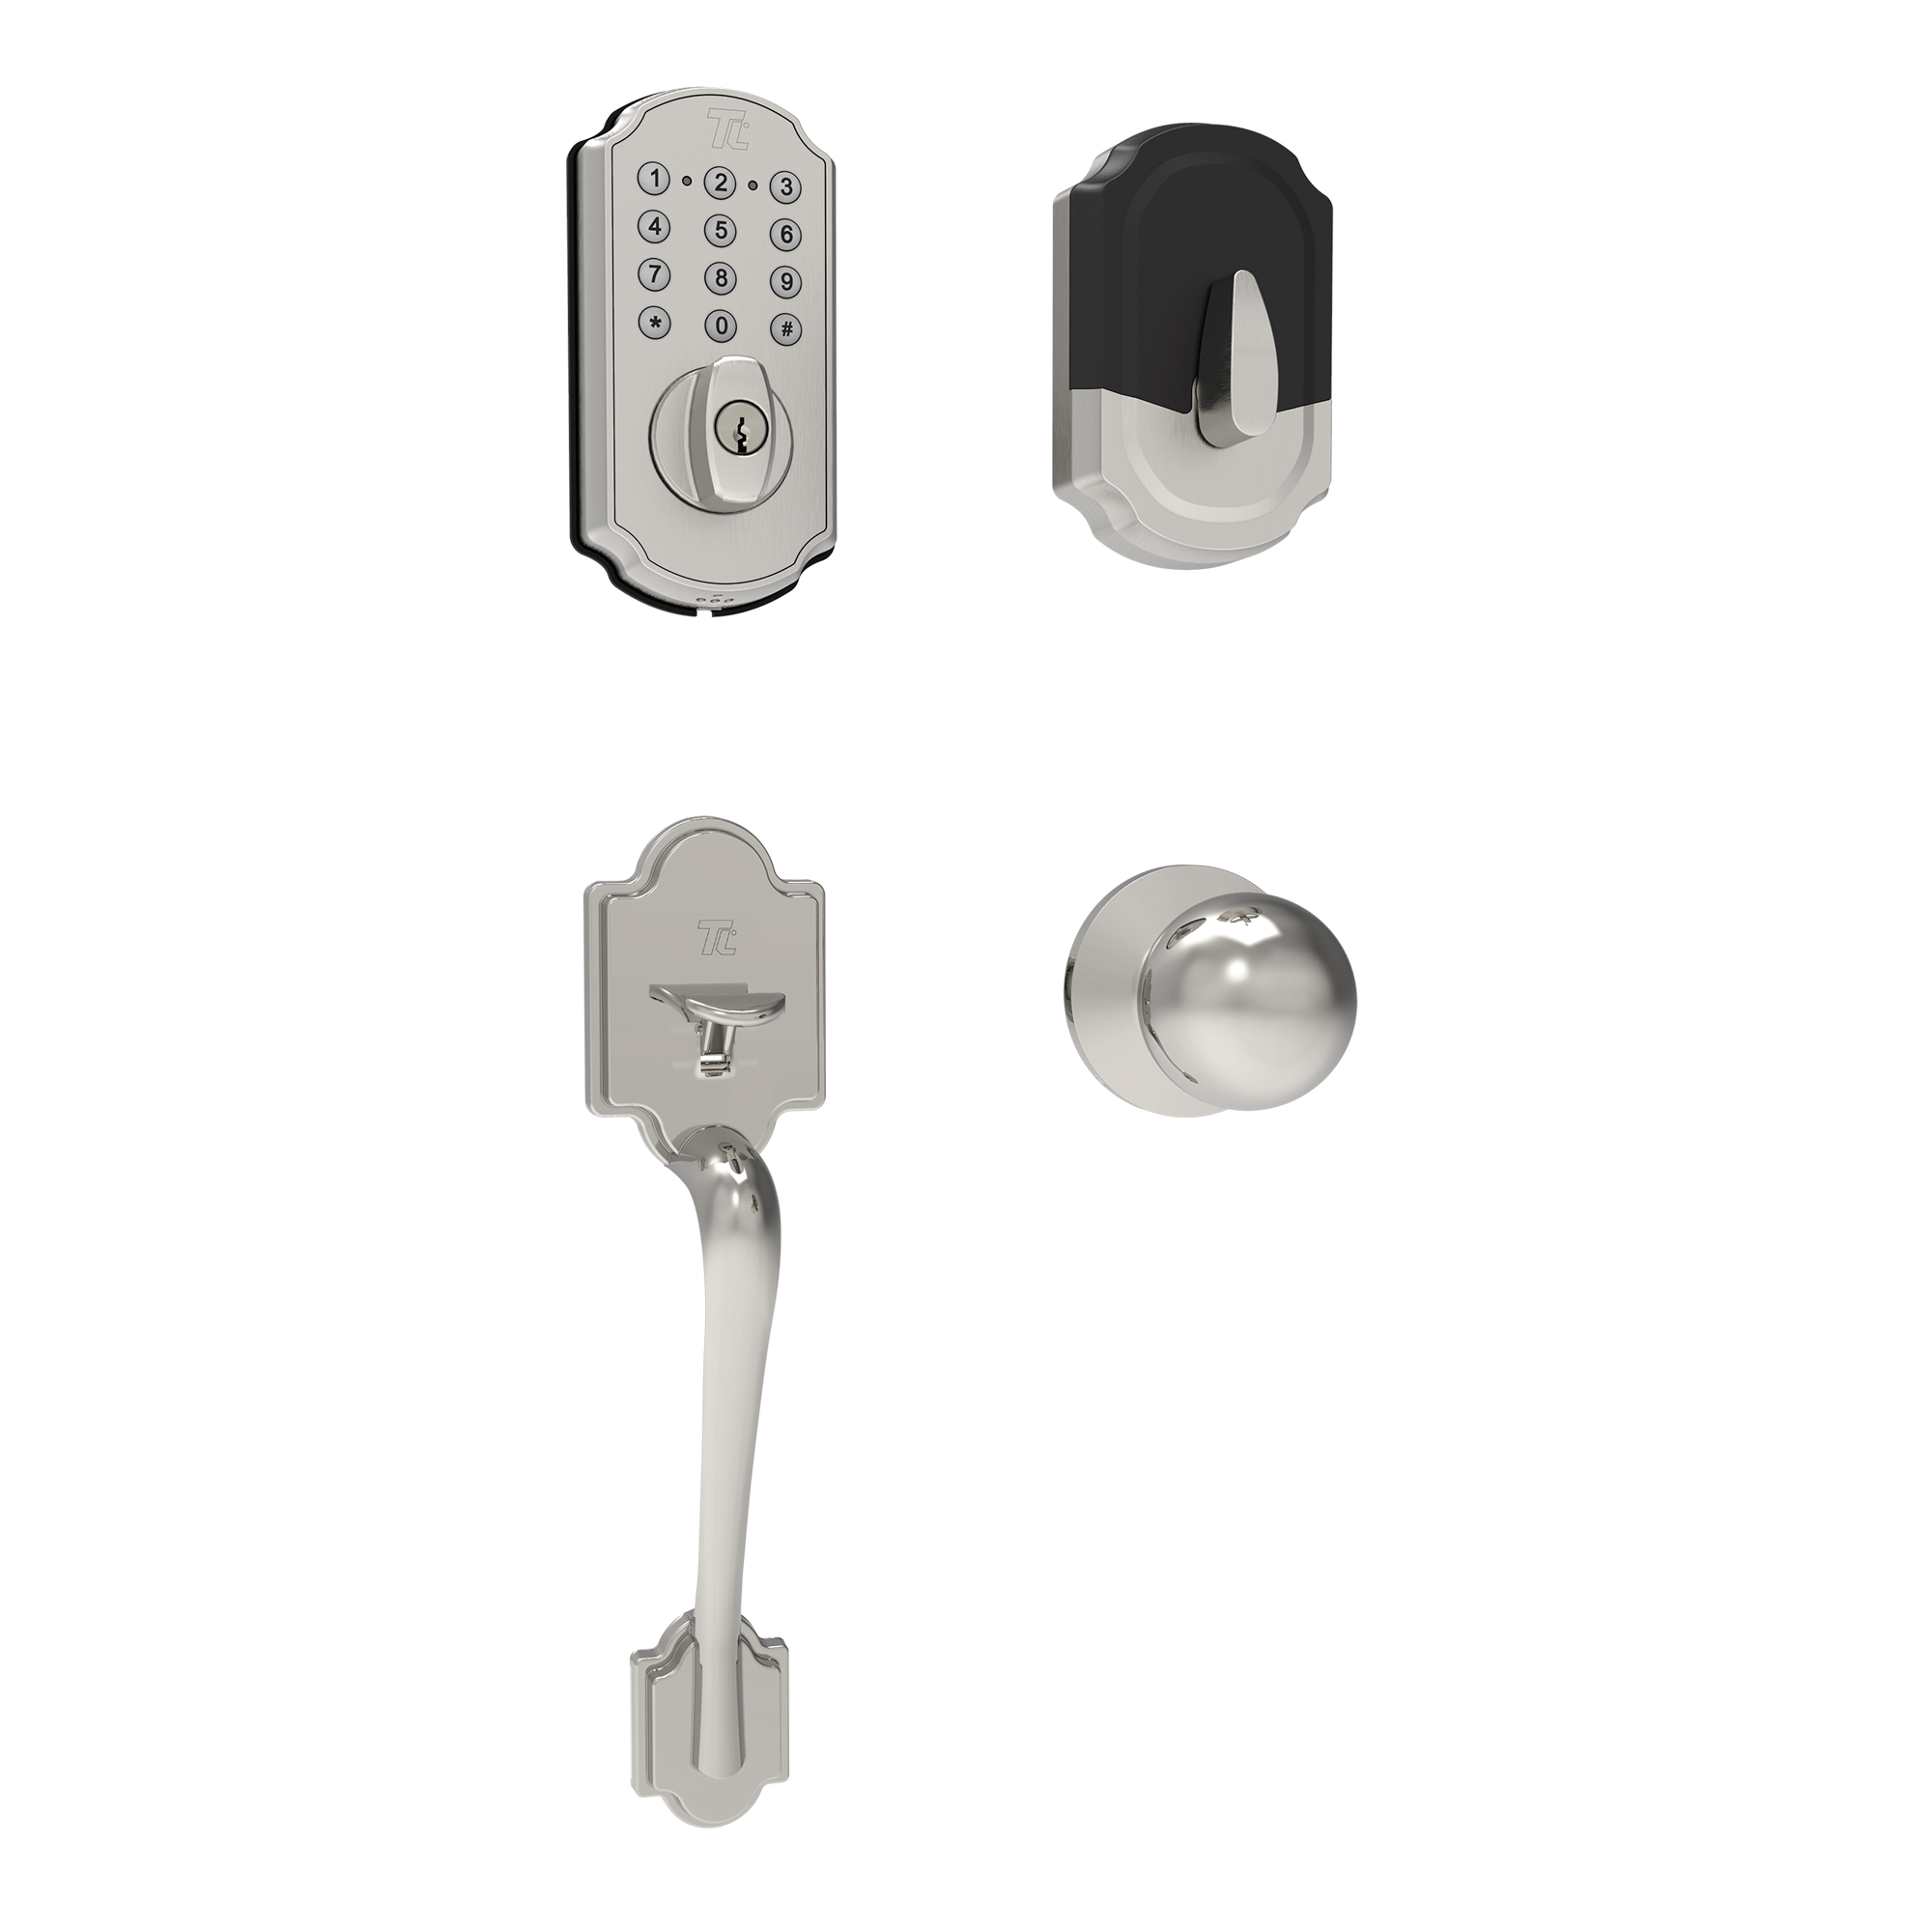 Effective and Easy to Install Brushed Nickel TURBOLOCK Front Door Lockset Combo /— Digital Deadbolt with Keypad Electronic Deadbolt Lock w//Voice Prompts TL114+TL121 Beautiful Entry Handle